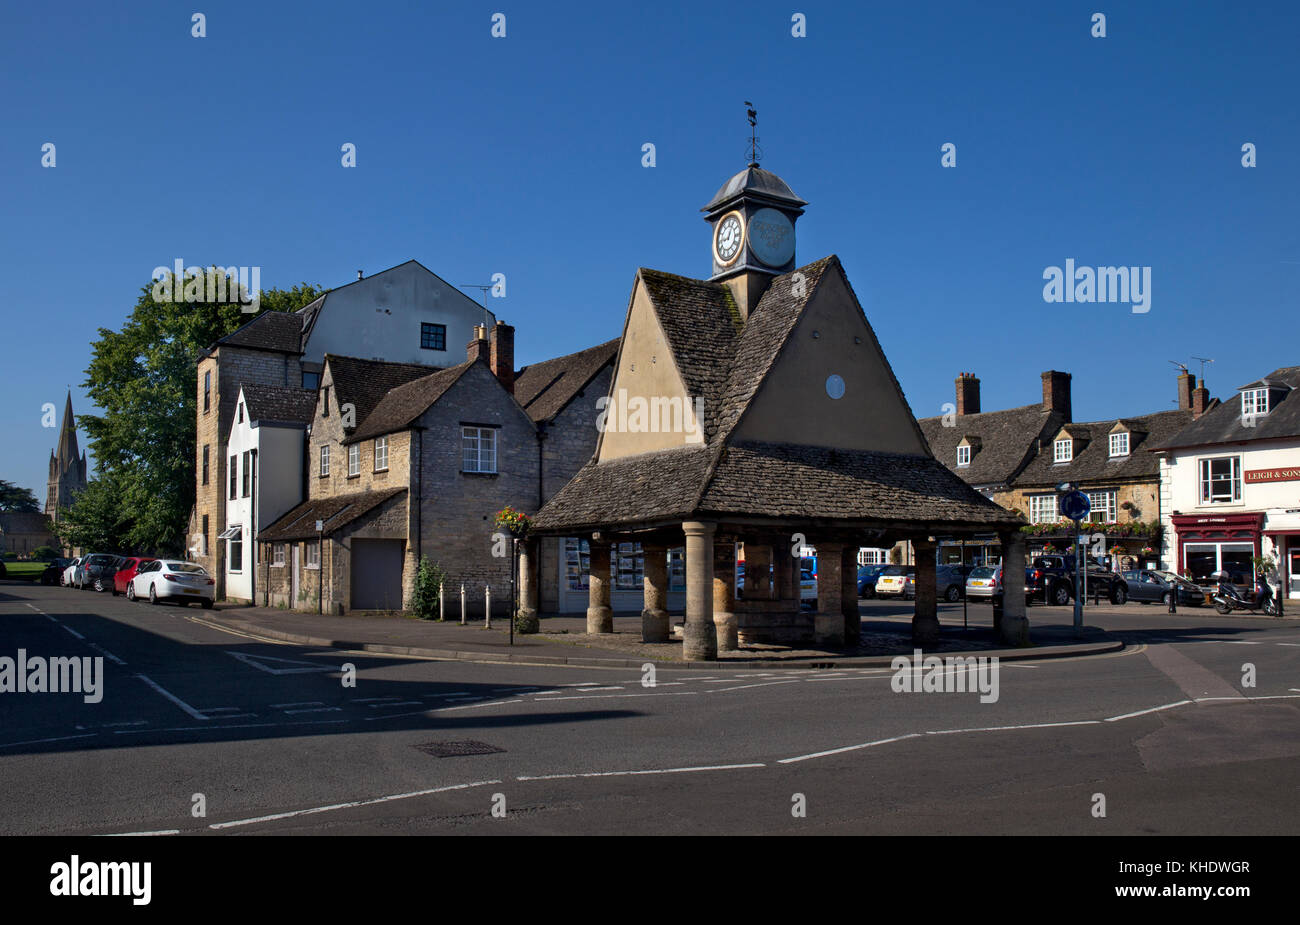 Butter cross,Market square,Witney,Oxfordshire,England - Stock Image